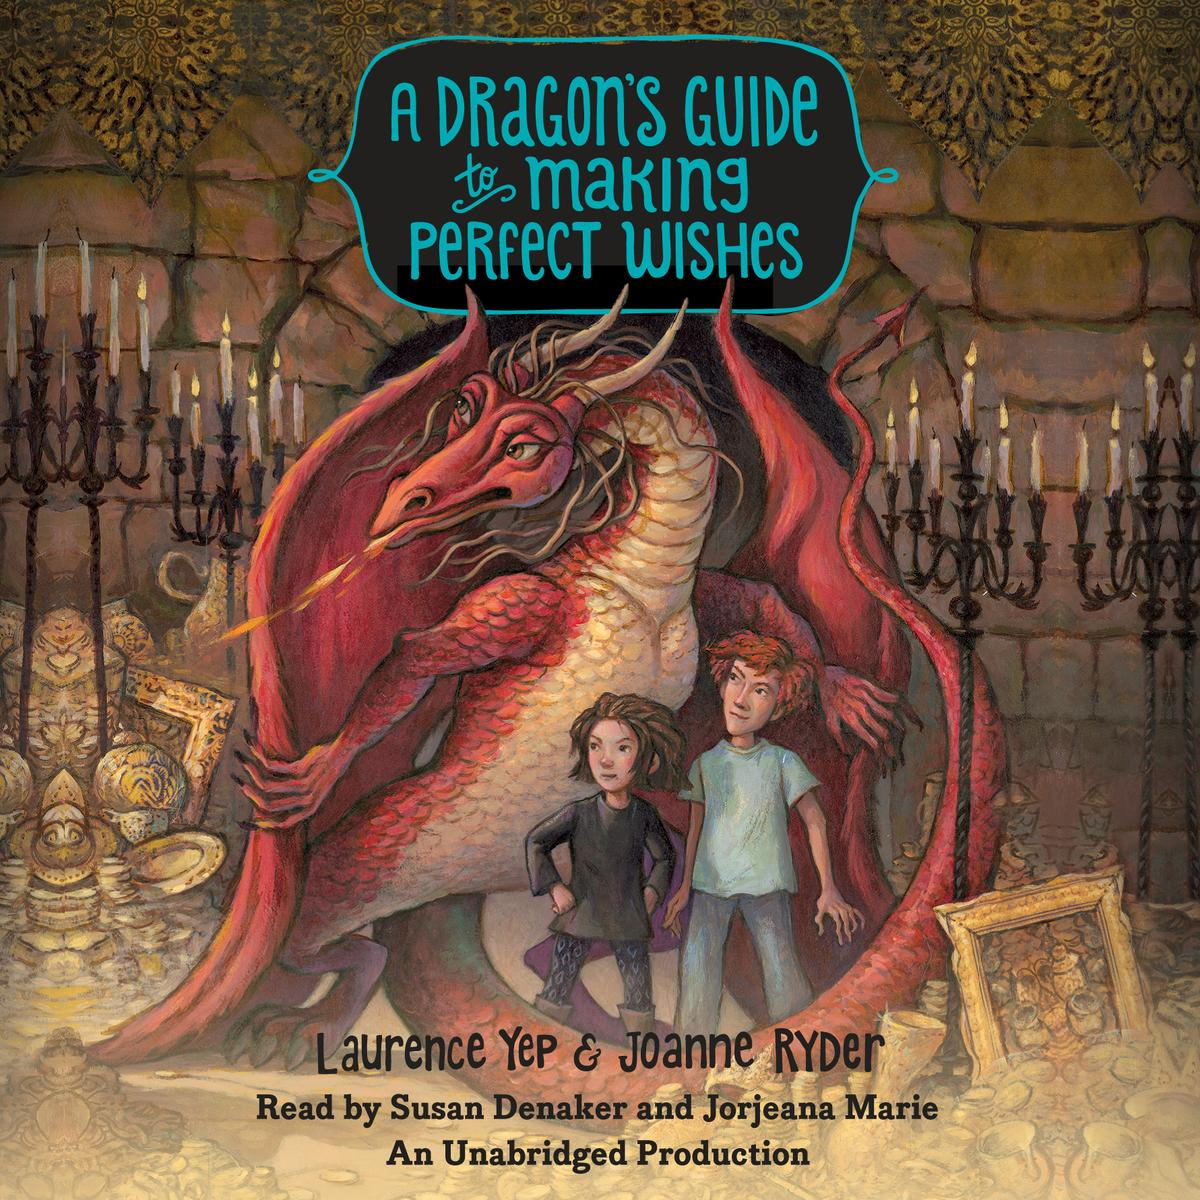 A Dragon's Guide to Making Perfect Wishes - Audiobook